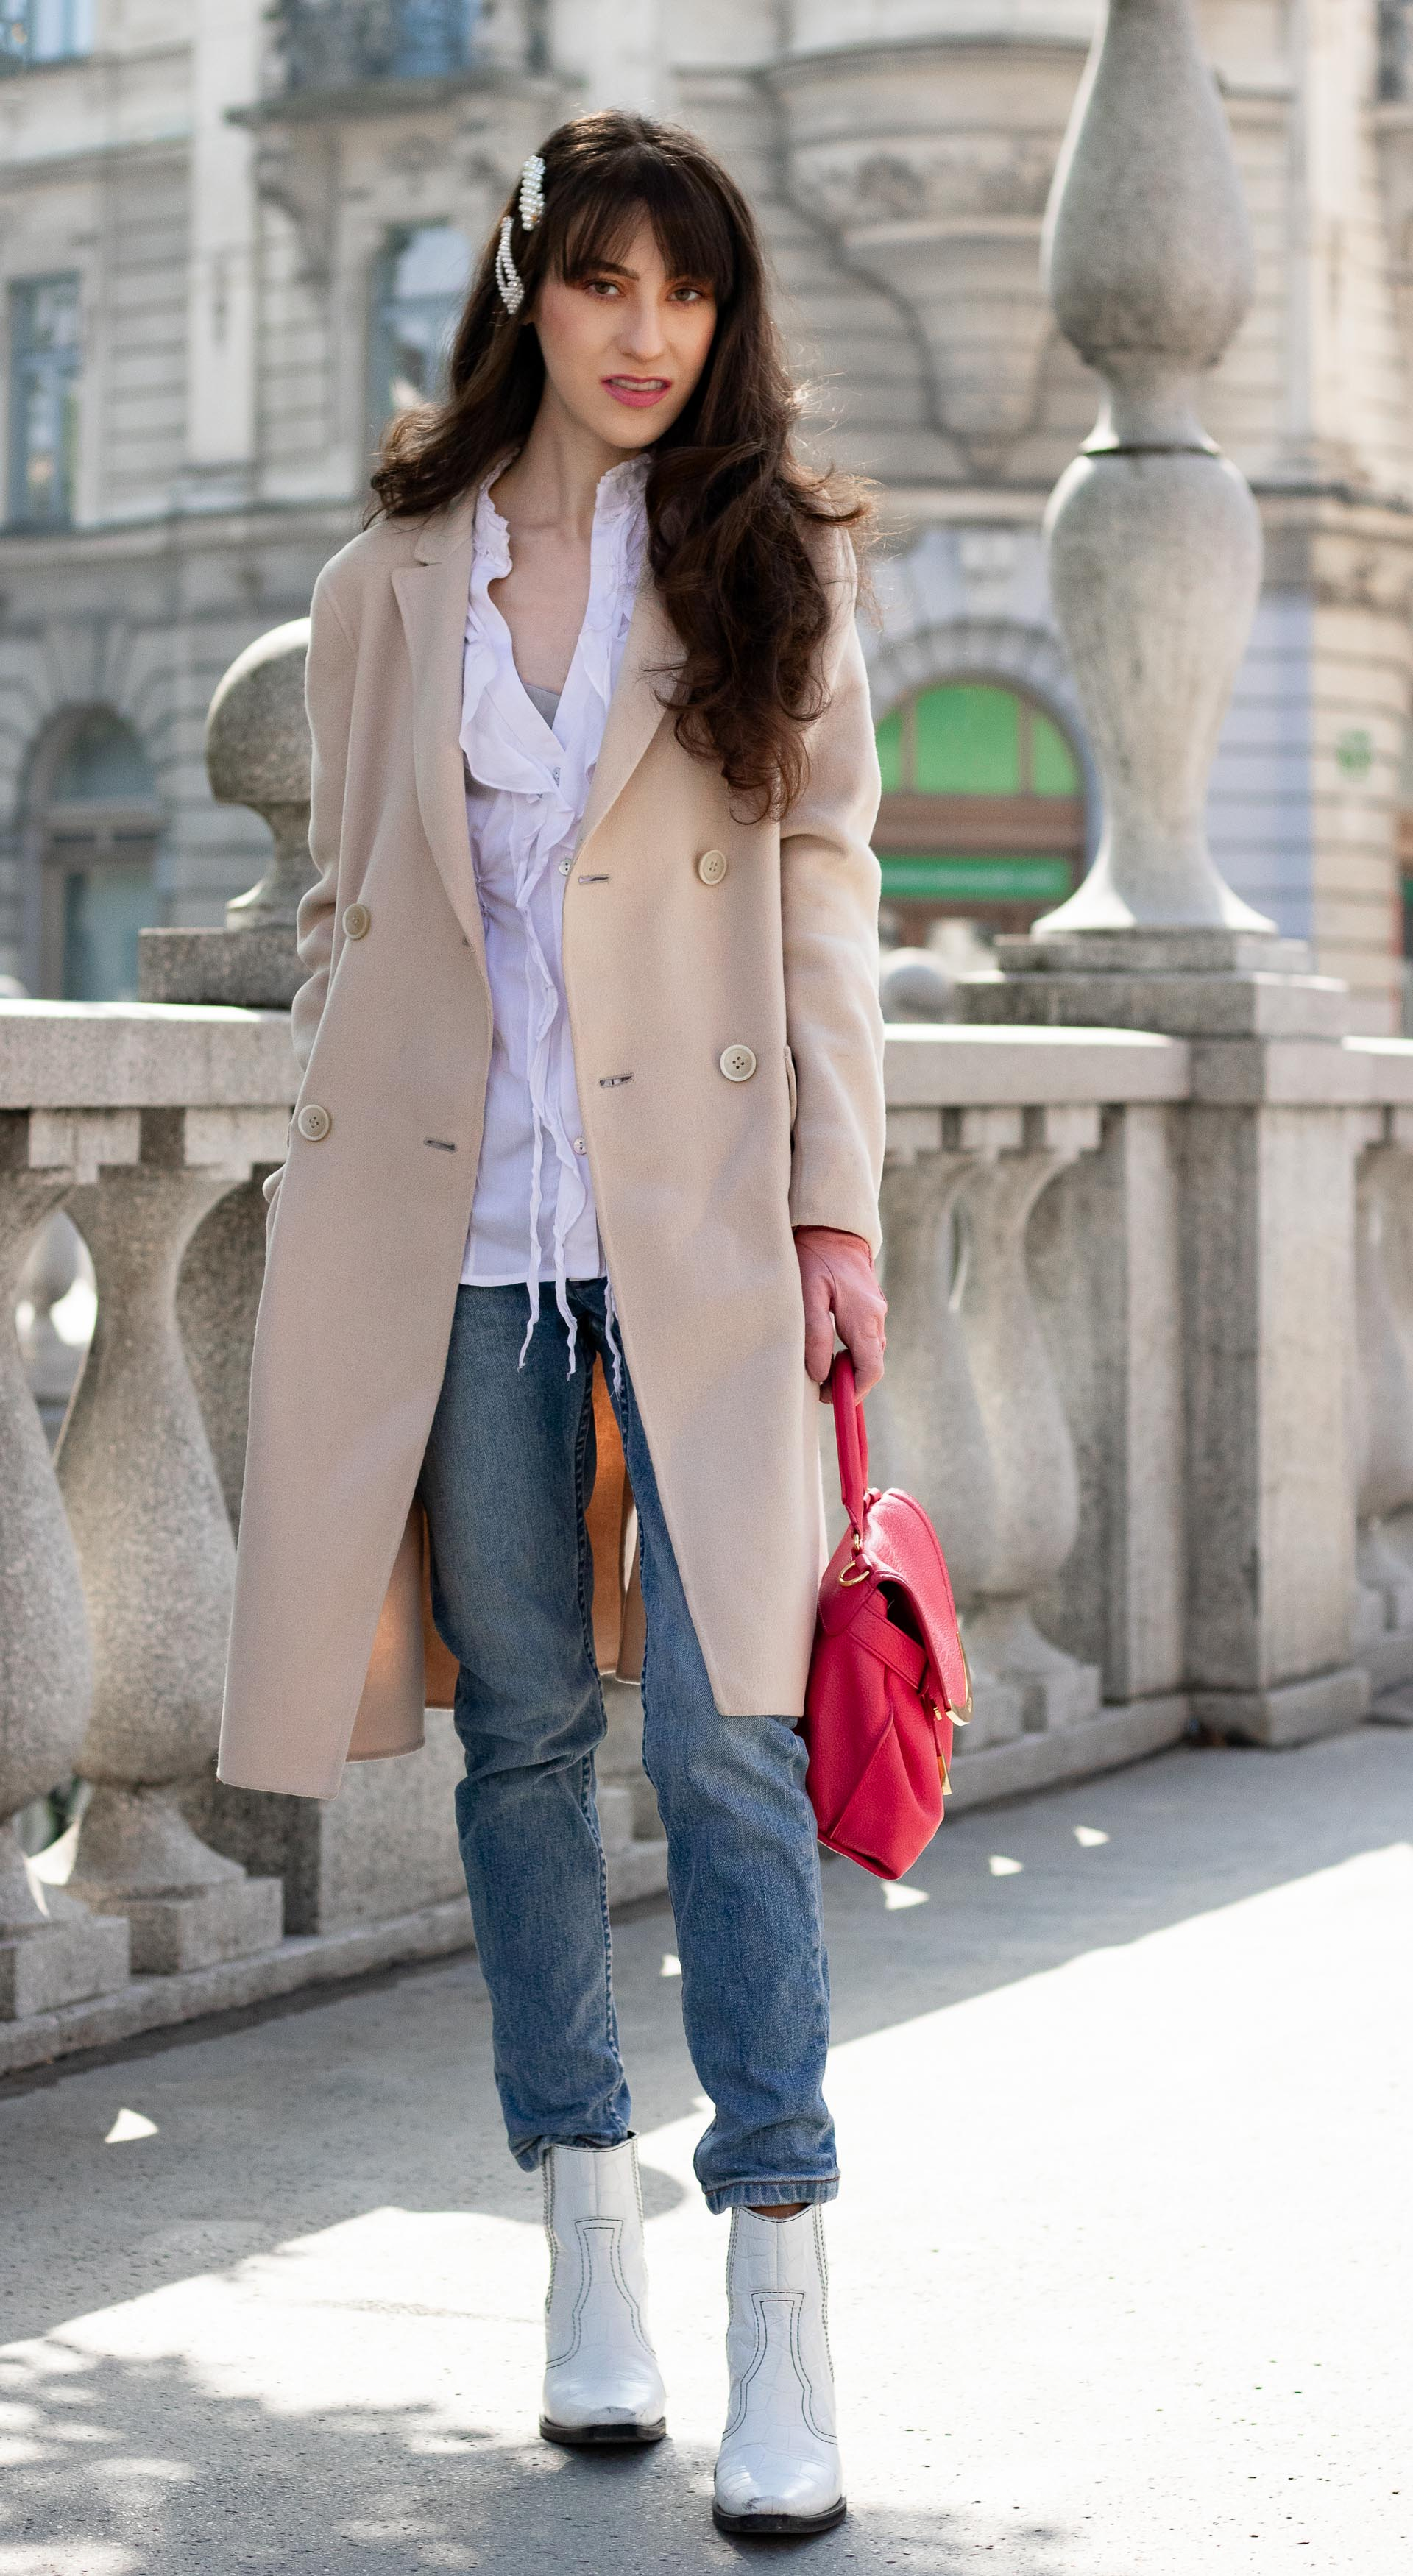 Must follow Slovenian Fashion Blogger Veronika Lipar of Brunette from Wall Street dressed in white western Ganni boots Weekend Max Mara coat white fringe shirt a.p.c. washed denim jeans pearl hair accessories See by Chloe pink top handle bag pink gloves on the Triple bridge